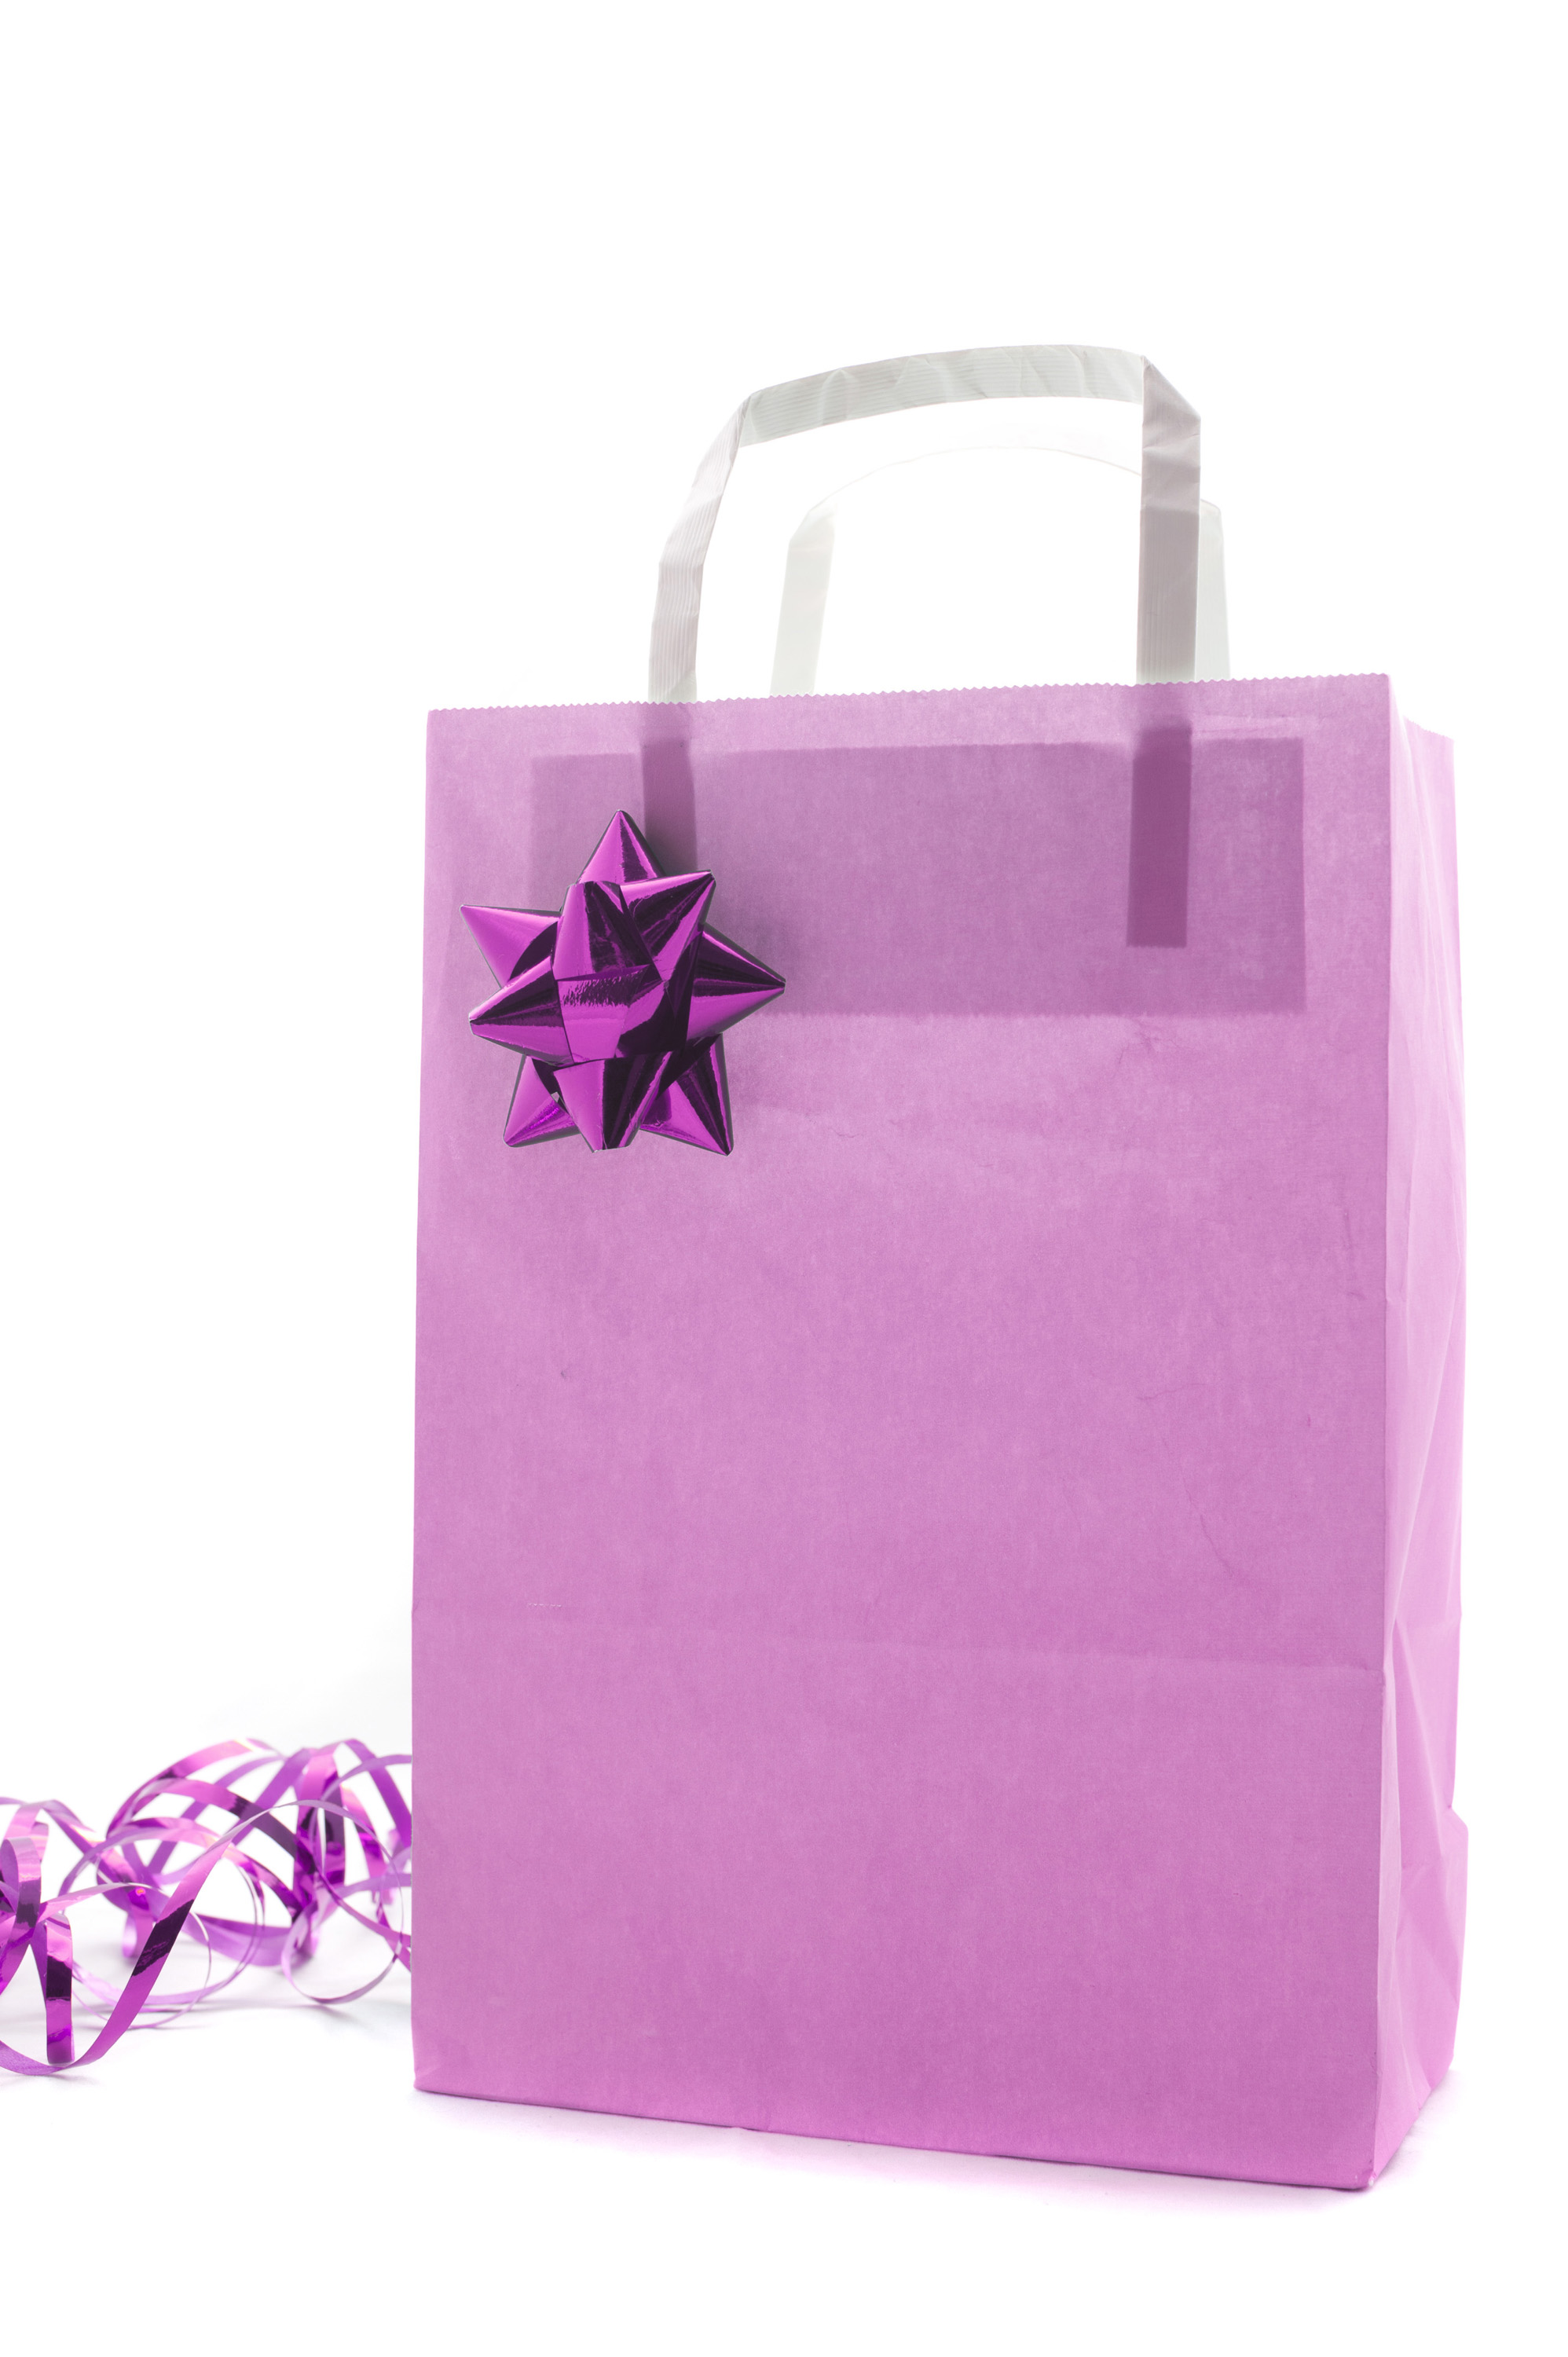 Photo Of Pink Christmas Shopping Or Gift Bag Free